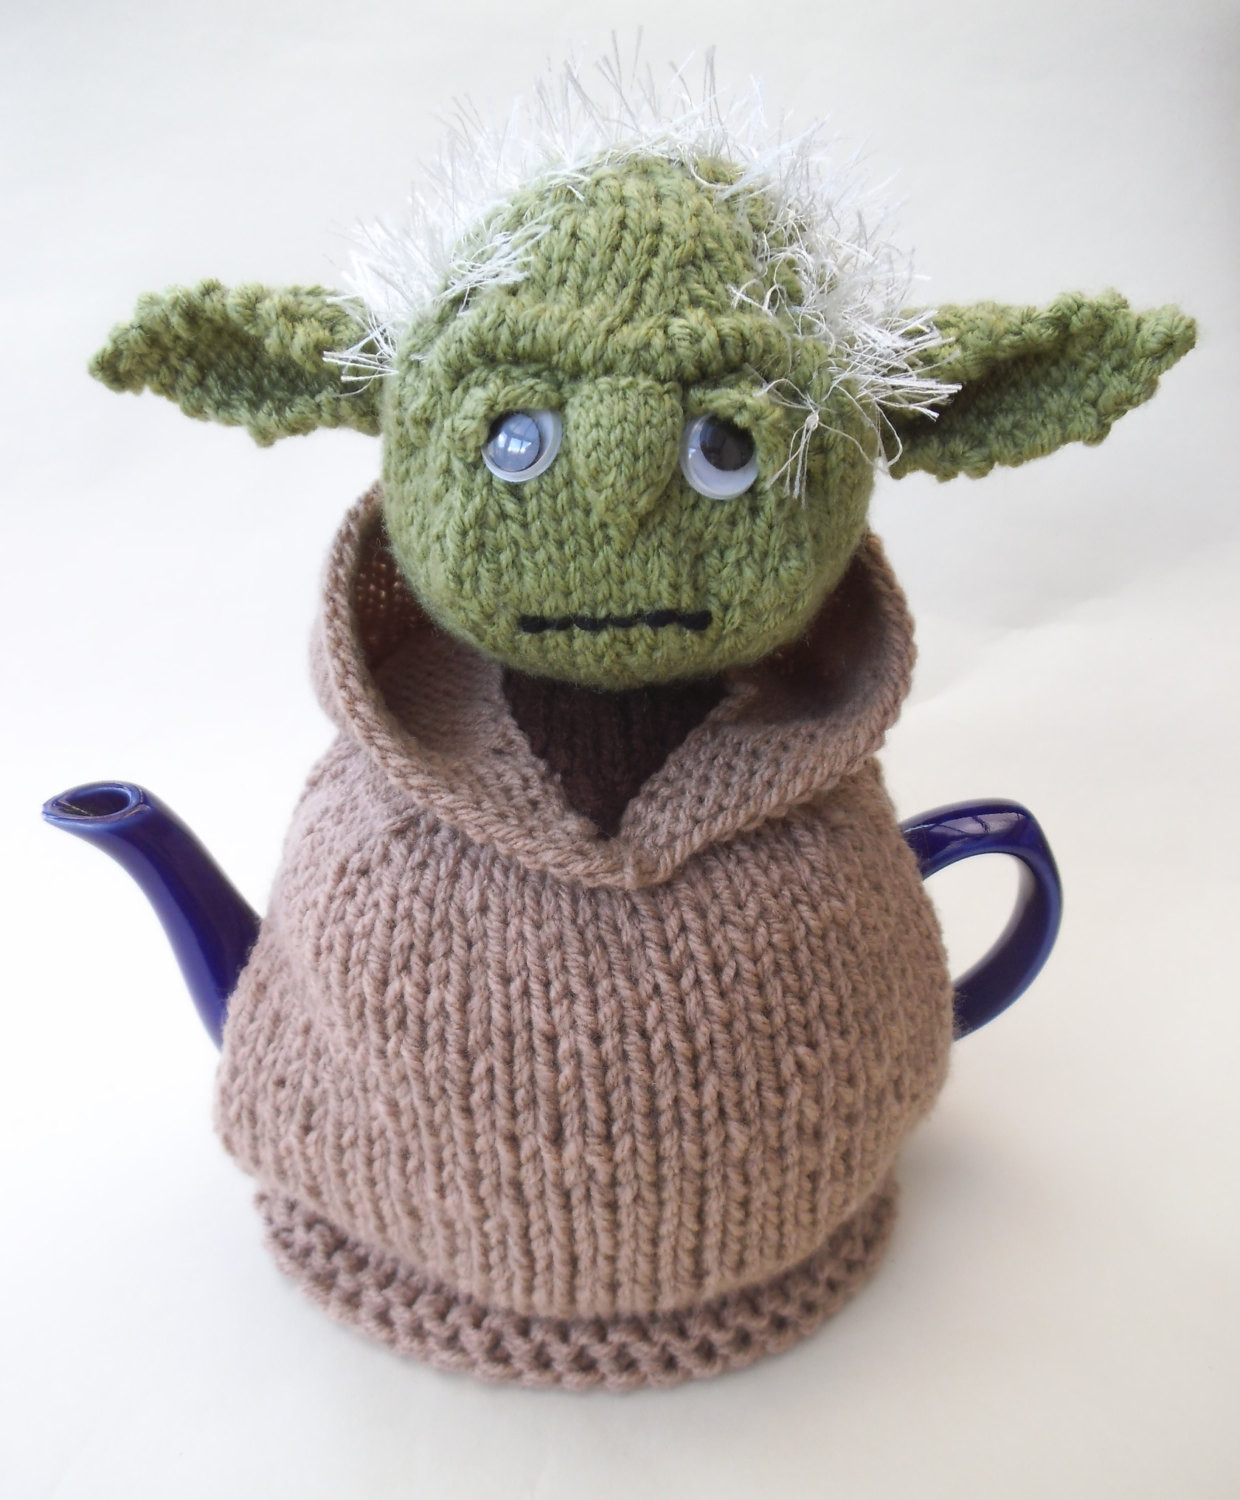 Tea Cosy Patterns New Starwars Yoda Tea Cosy Knitting Pattern Of Innovative 44 Models Tea Cosy Patterns